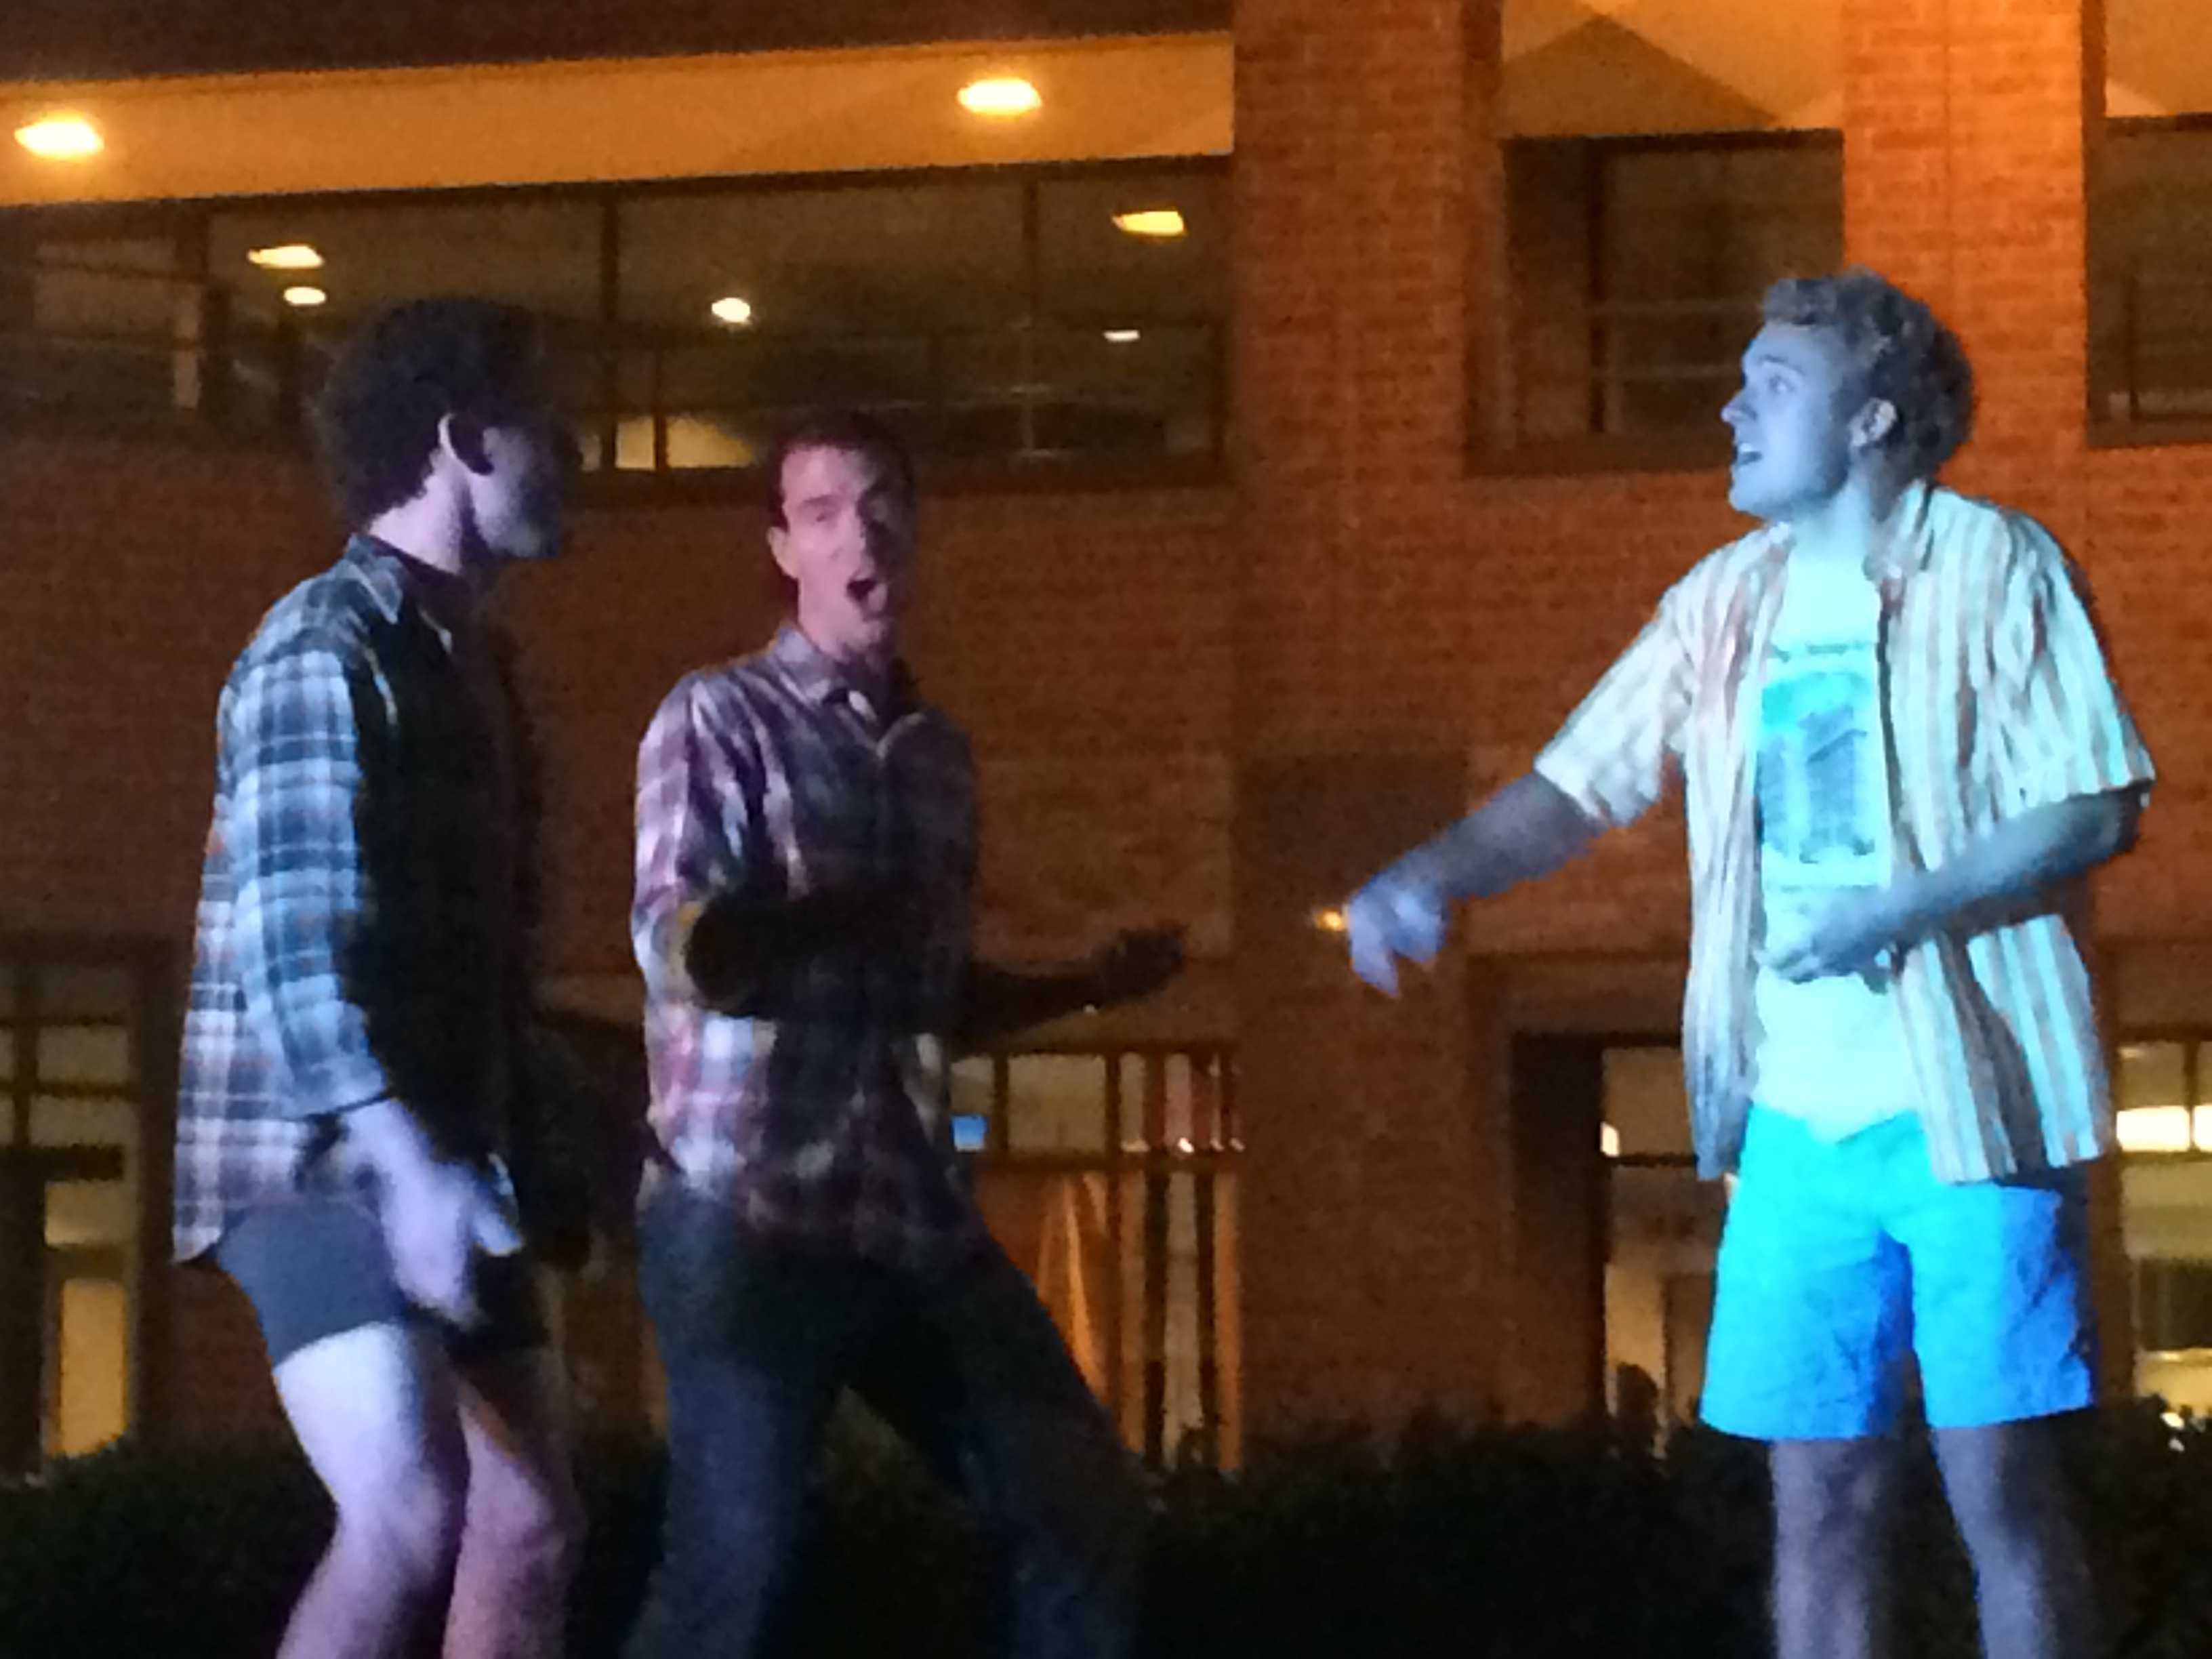 Studio 013 Refugees owned the stage at Westowne Square for hours of improv comedy